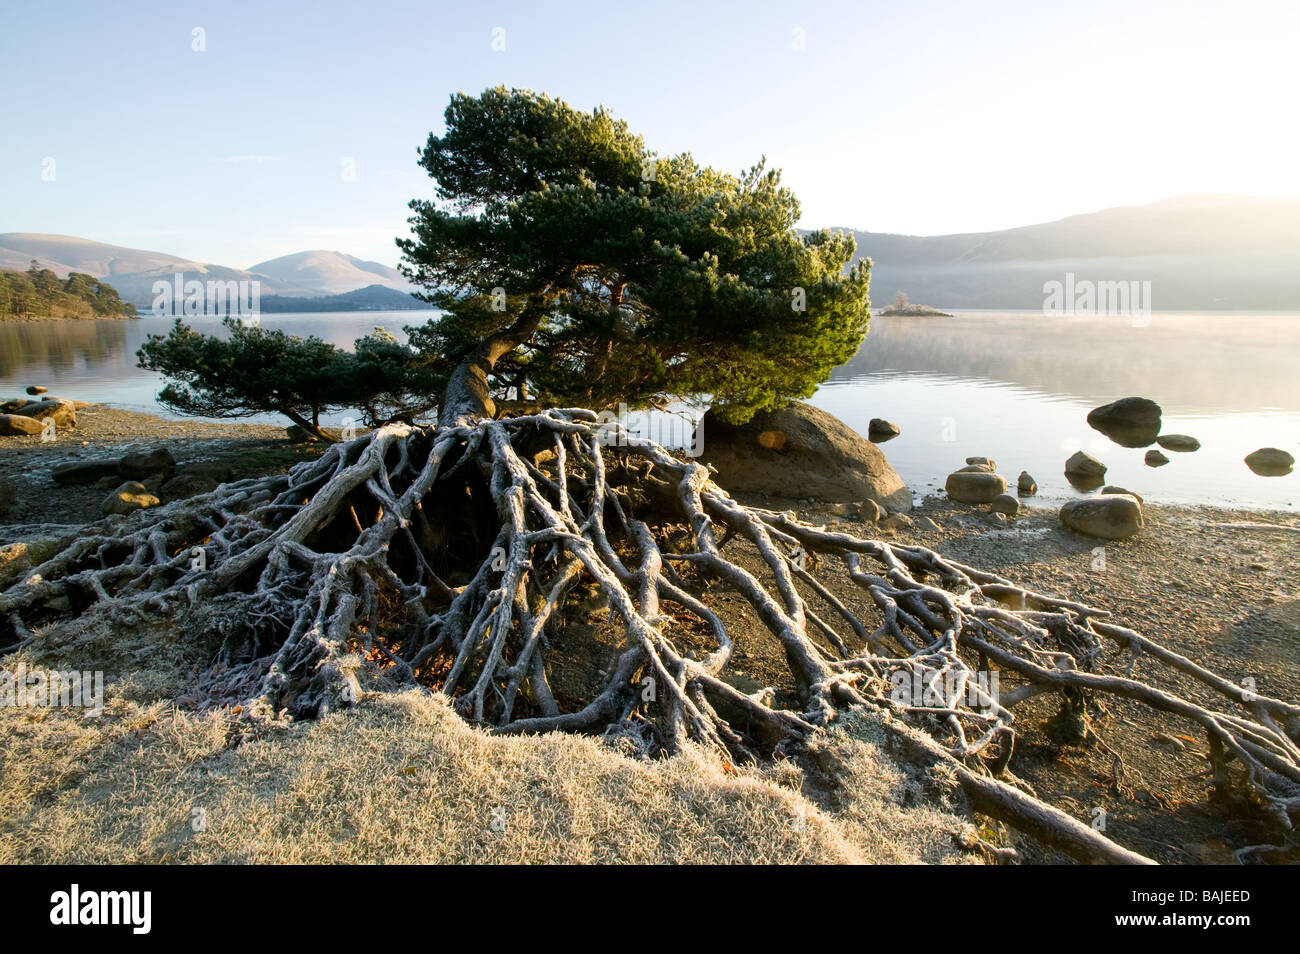 exposed tree root system stockfotos exposed tree root system bilder alamy. Black Bedroom Furniture Sets. Home Design Ideas